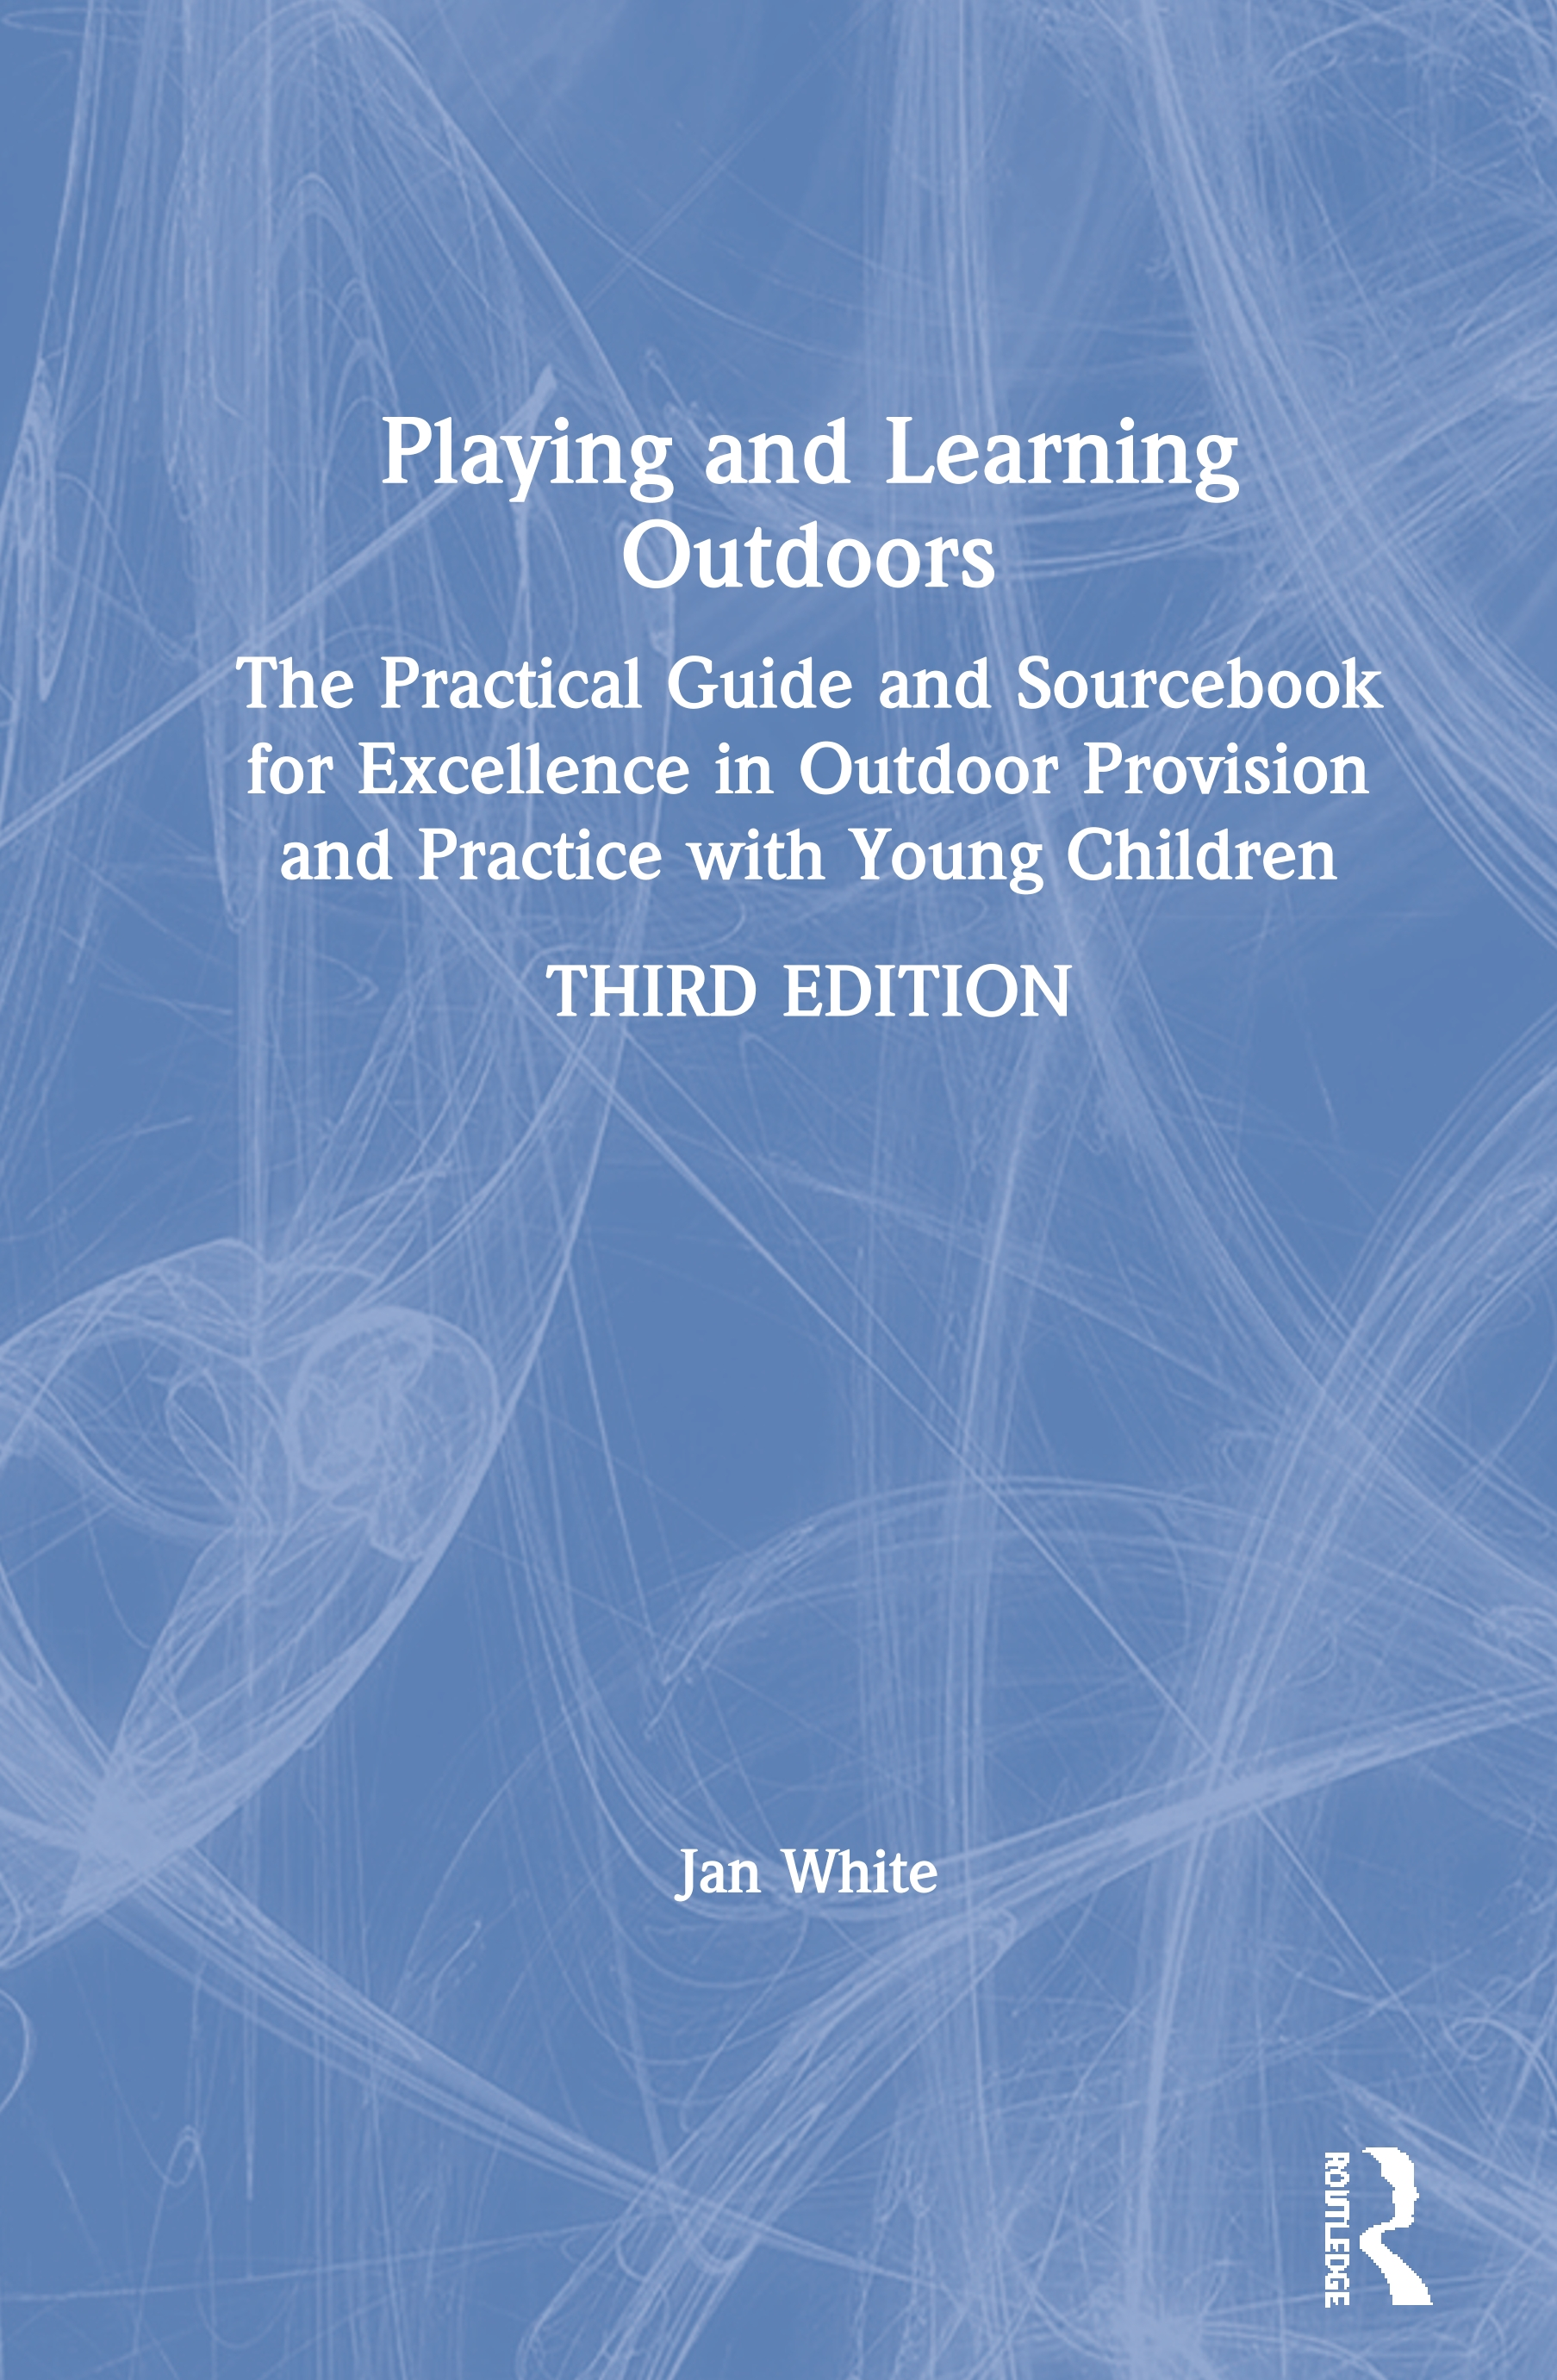 Playing and Learning Outdoors: The practical guide and sourcebook for excellence in outdoor provision and practice with young children book cover